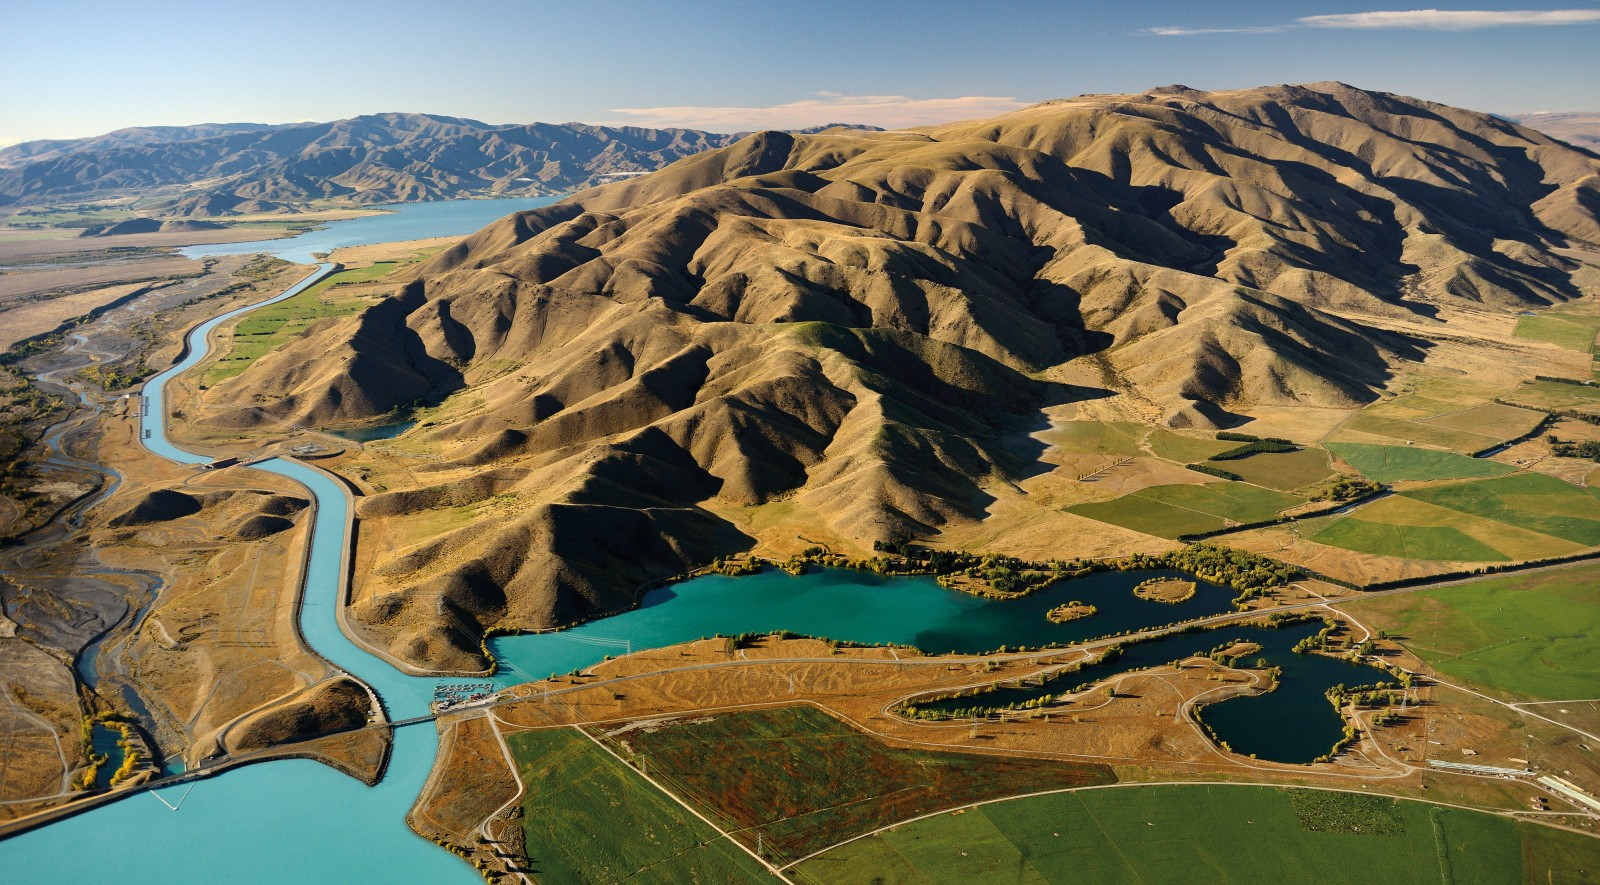 Channelled by big thinking, the glacial waters of Lakes Tekapo, Pukaki and Ohau—holding fully half of all New Zealand's hydro storage—pass through eight dams on their way to the sea. The Waitaki hydro scheme re-engineered entire catchments and floodplains—a high dam raised Lake Pukaki by 37 metres. But the days of such nature-taming projects may be over: In 1970, 264,907 New Zealanders, almost 10 per cent of the population, signed a petition blocking a proposal to dam Lake Manapouri. Last year, generator Meridian announced it was mothballing a proposed (and hotly opposed) $1.6 billion scheme on the Lower Waitaki, citing falling electricity demand.